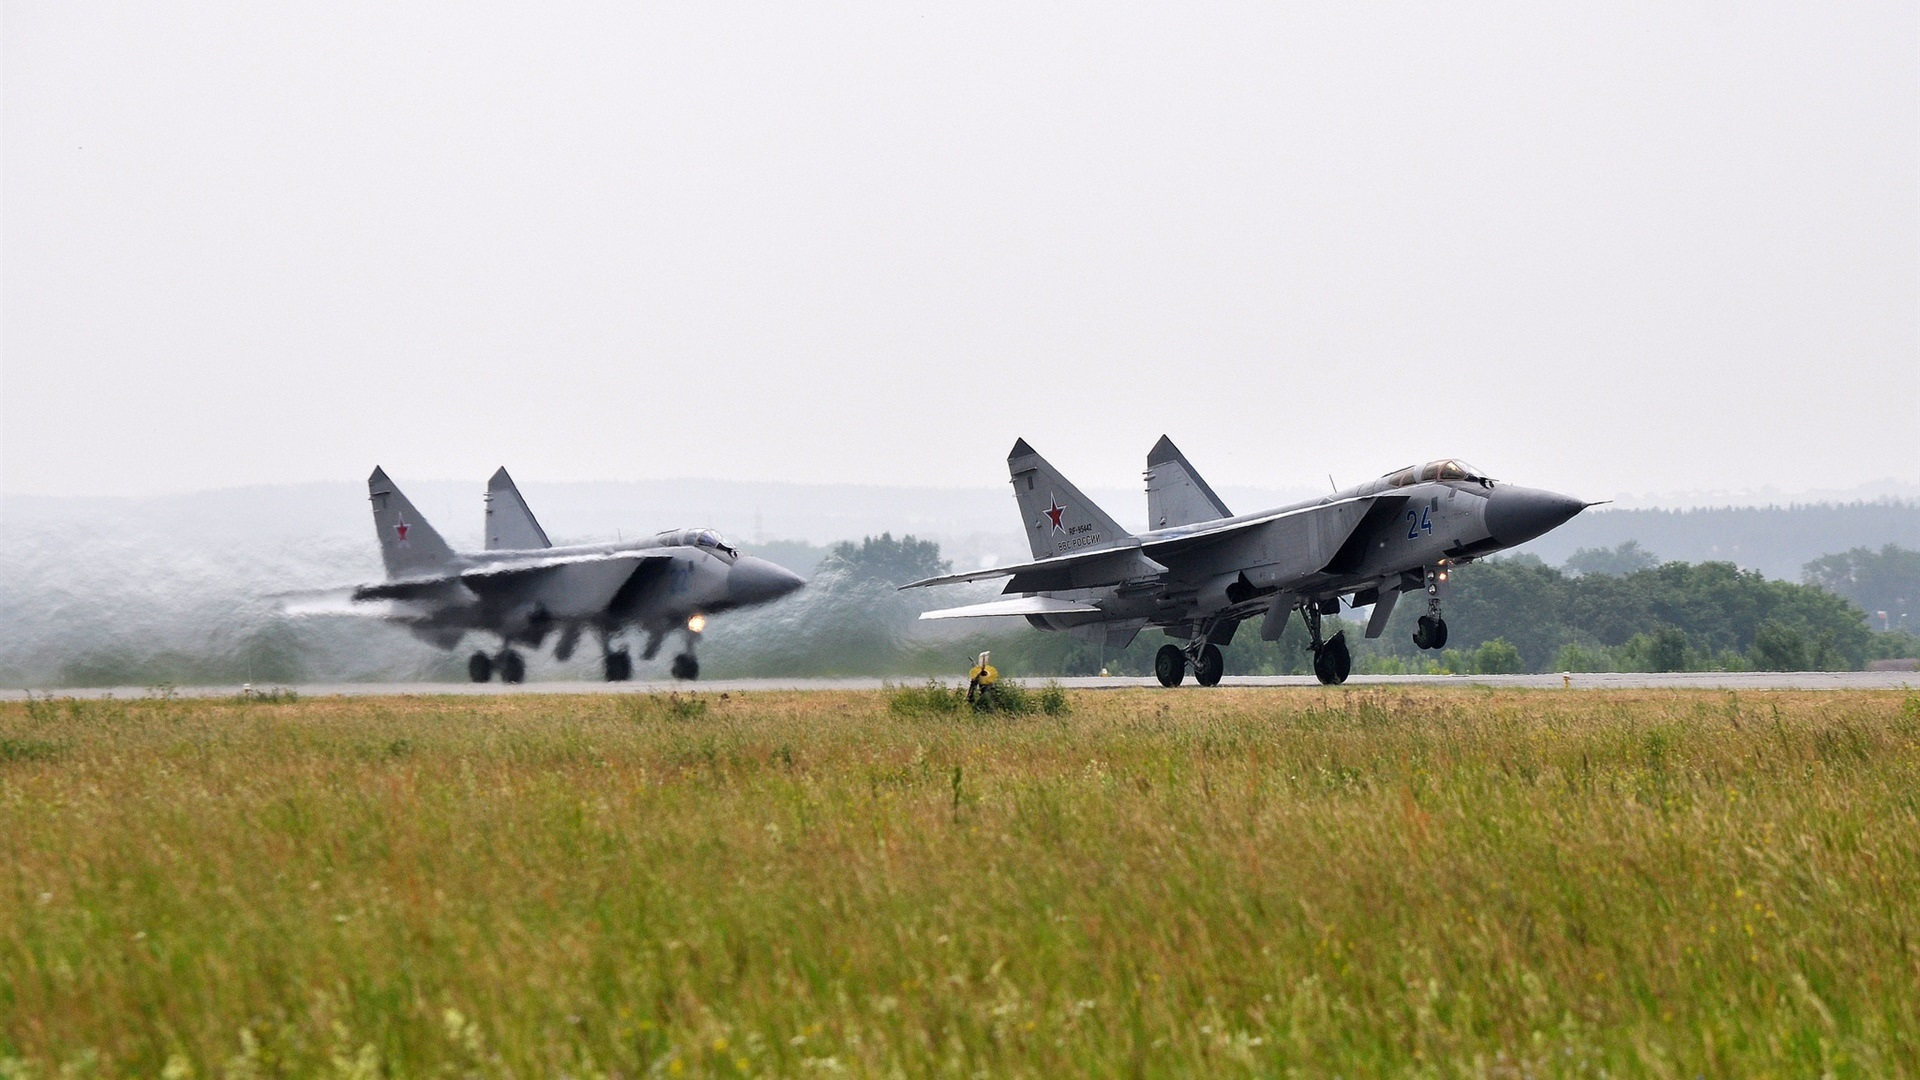 Wallpaper The Mig 31 Fighter Taking Off 1920x1080 Full Hd 2k